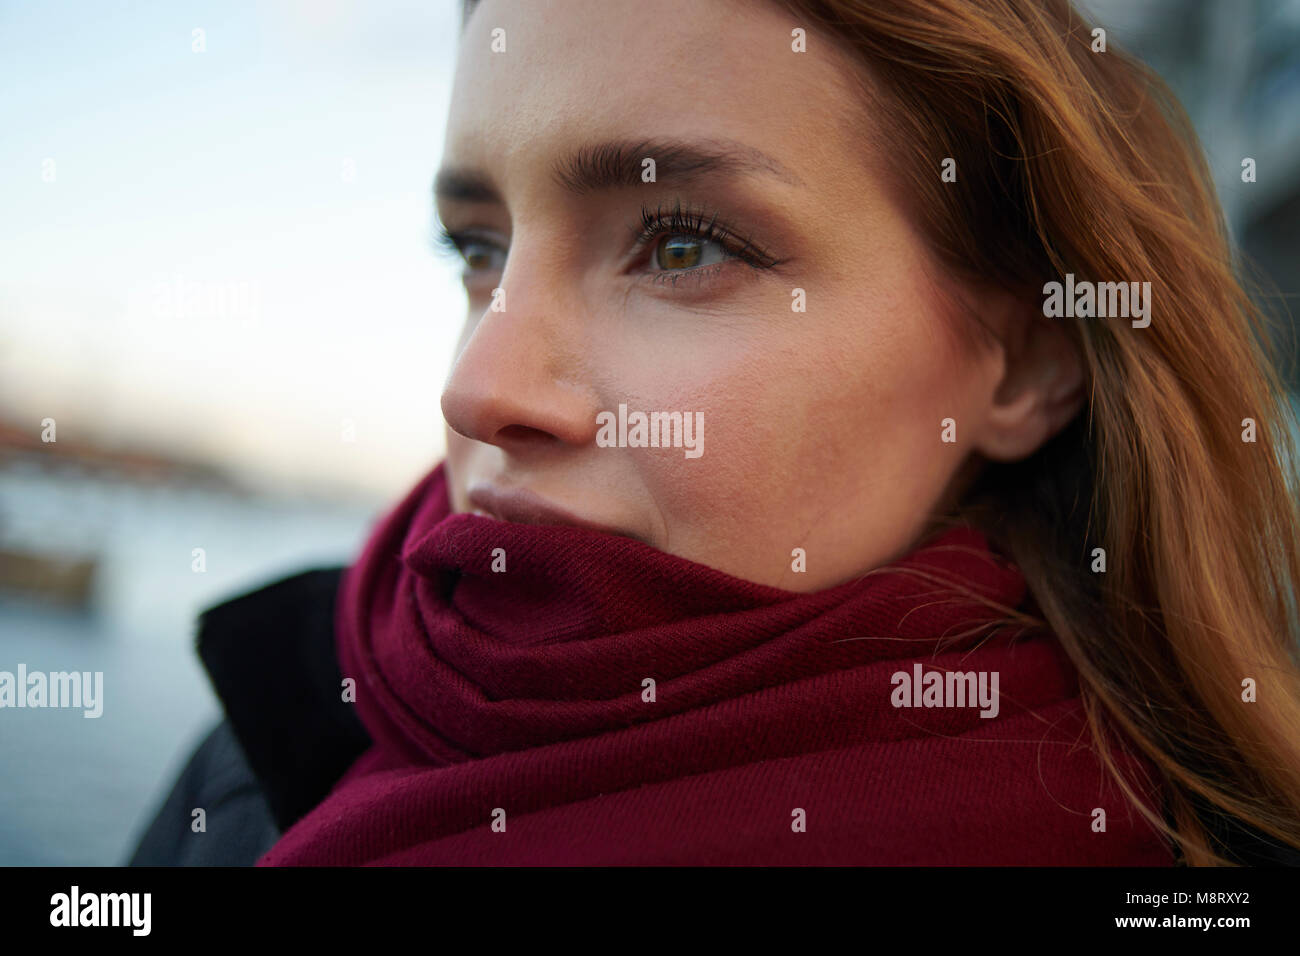 Close-up of woman wearing scarf outdoors Photo Stock